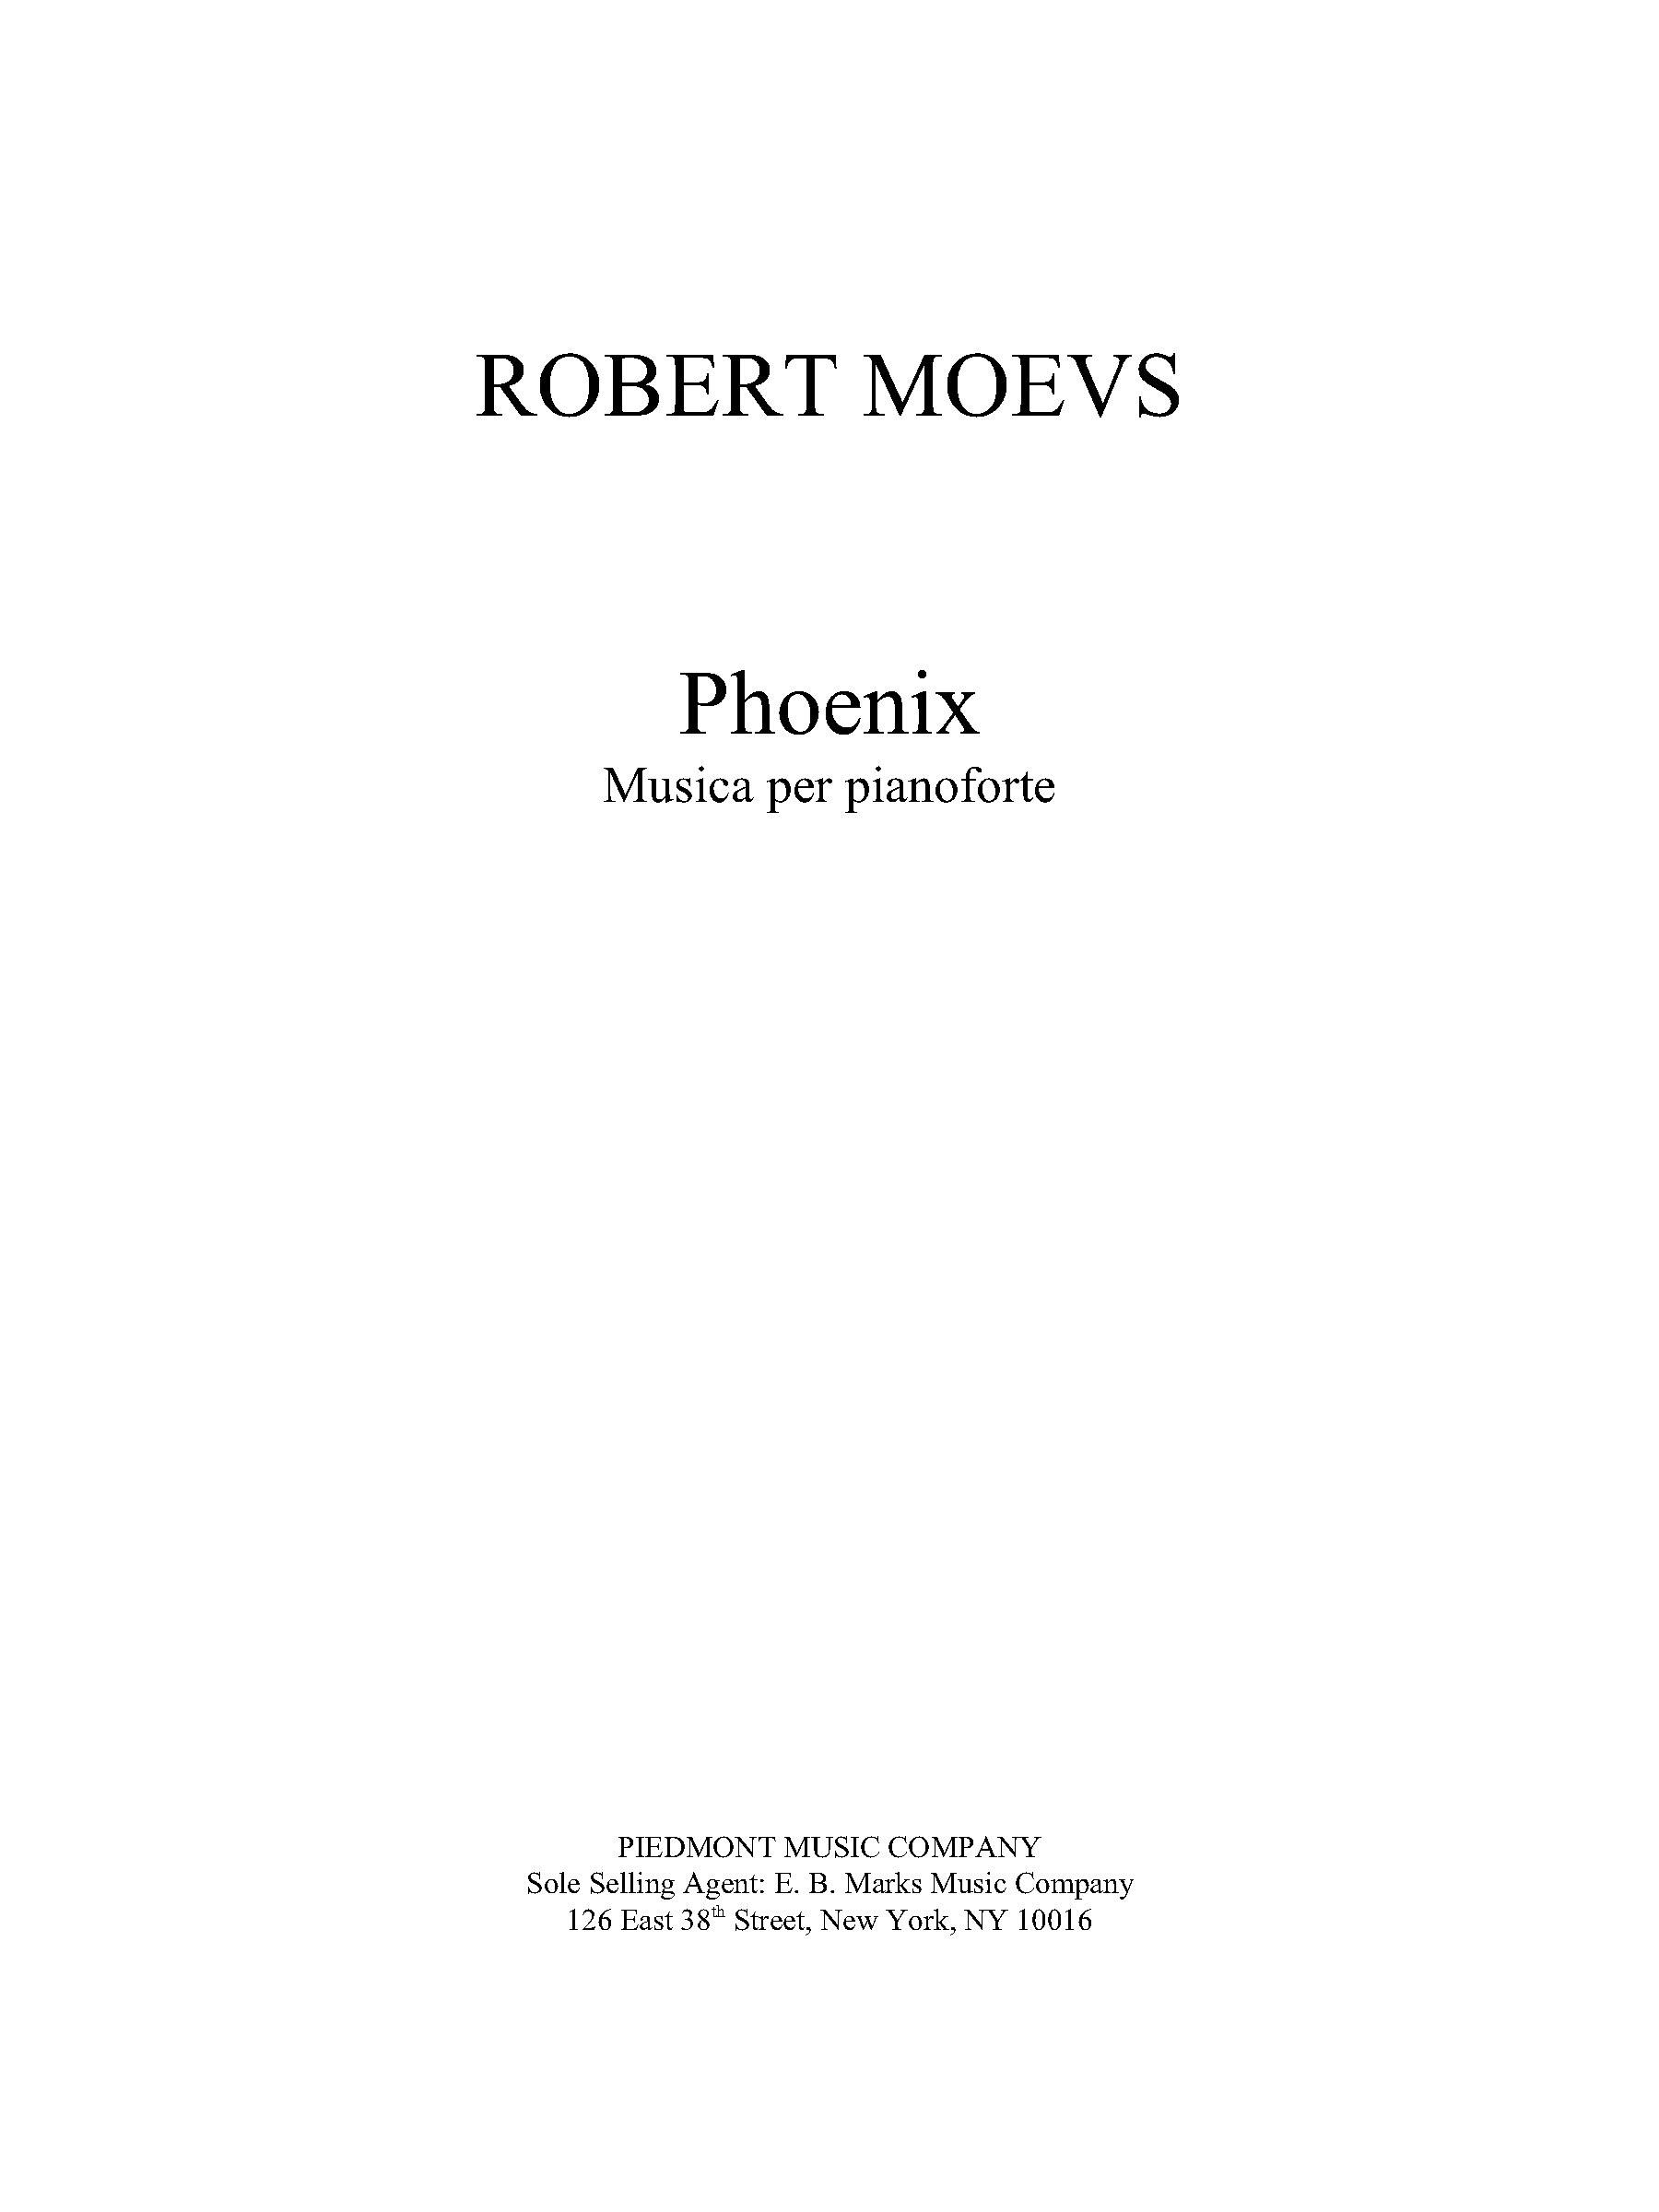 Phoenix for Piano solo